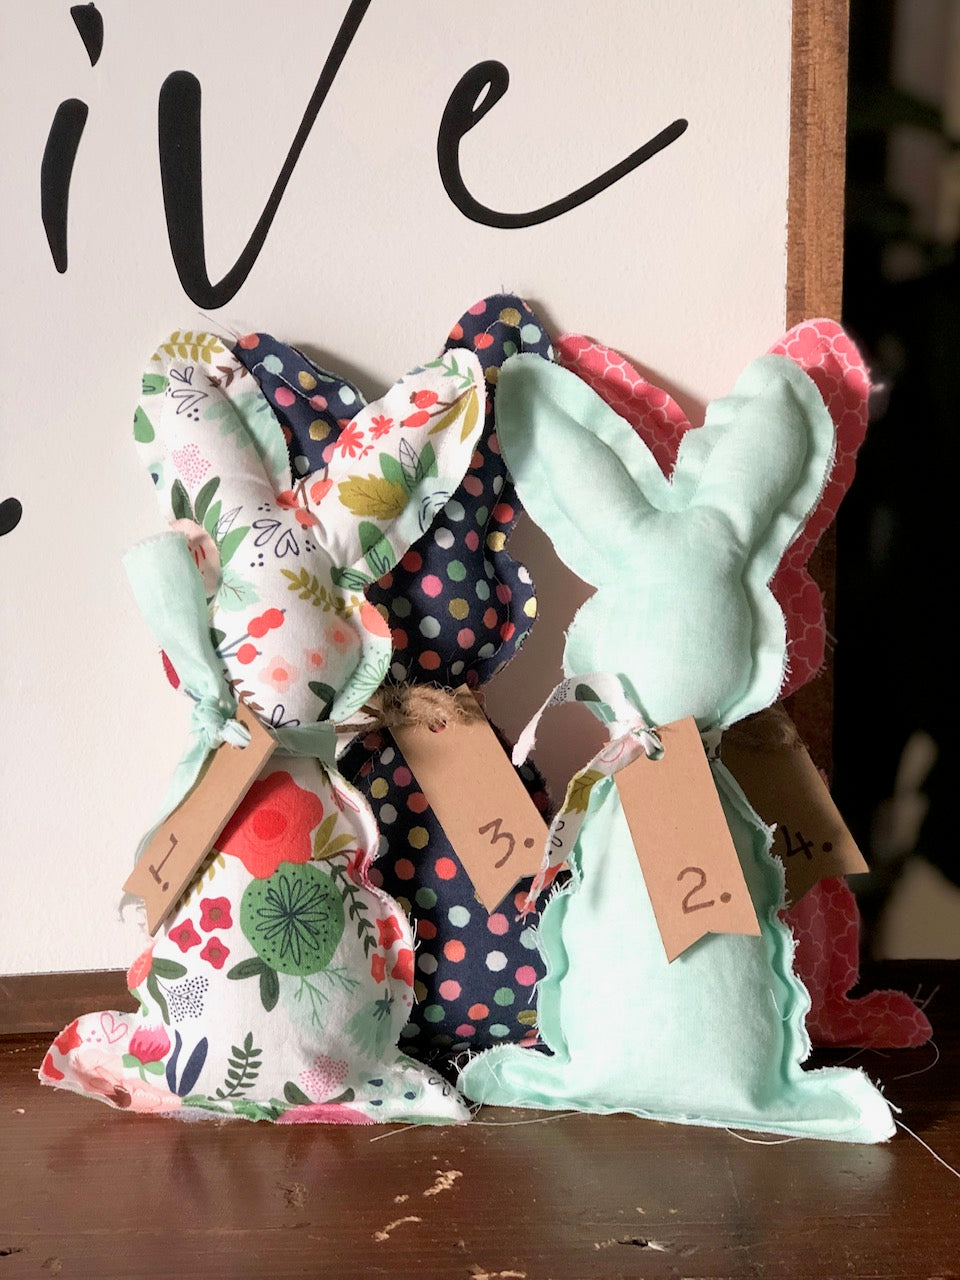 Fabric bunnies made with spring-themed fabric